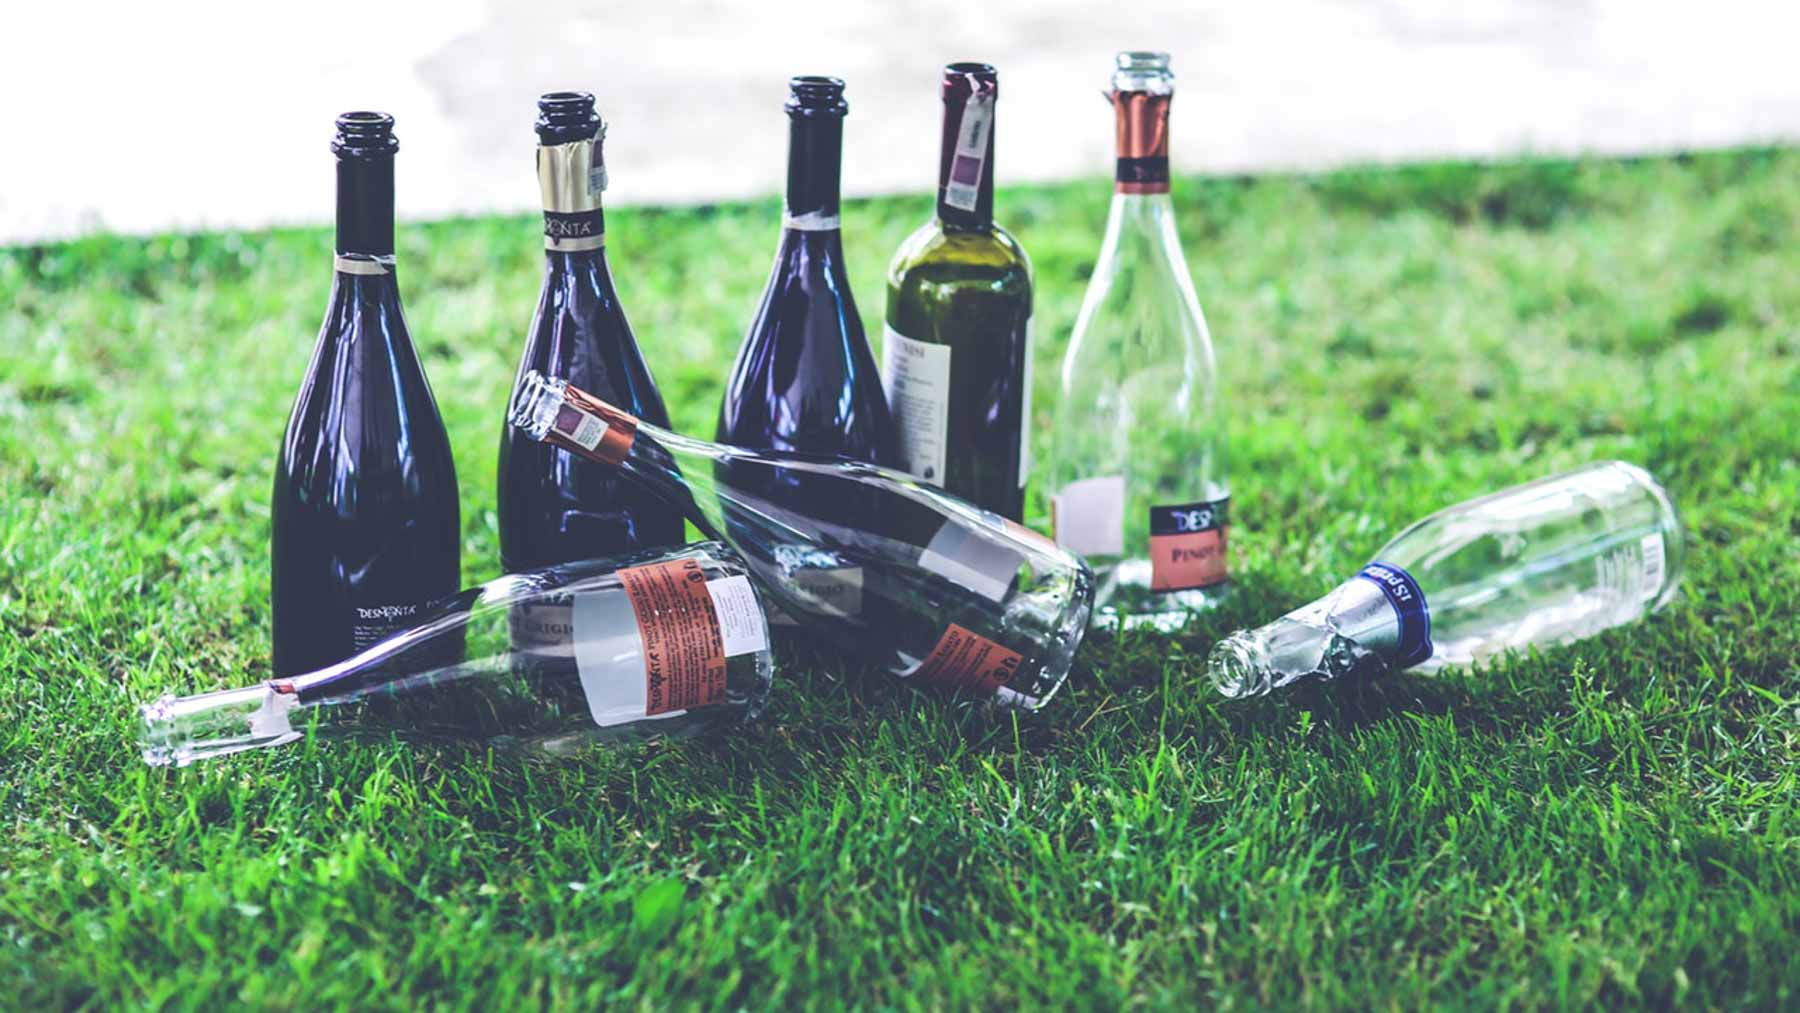 empty bottles of alcohol lying on a patch of grass to represent living life alcohol free